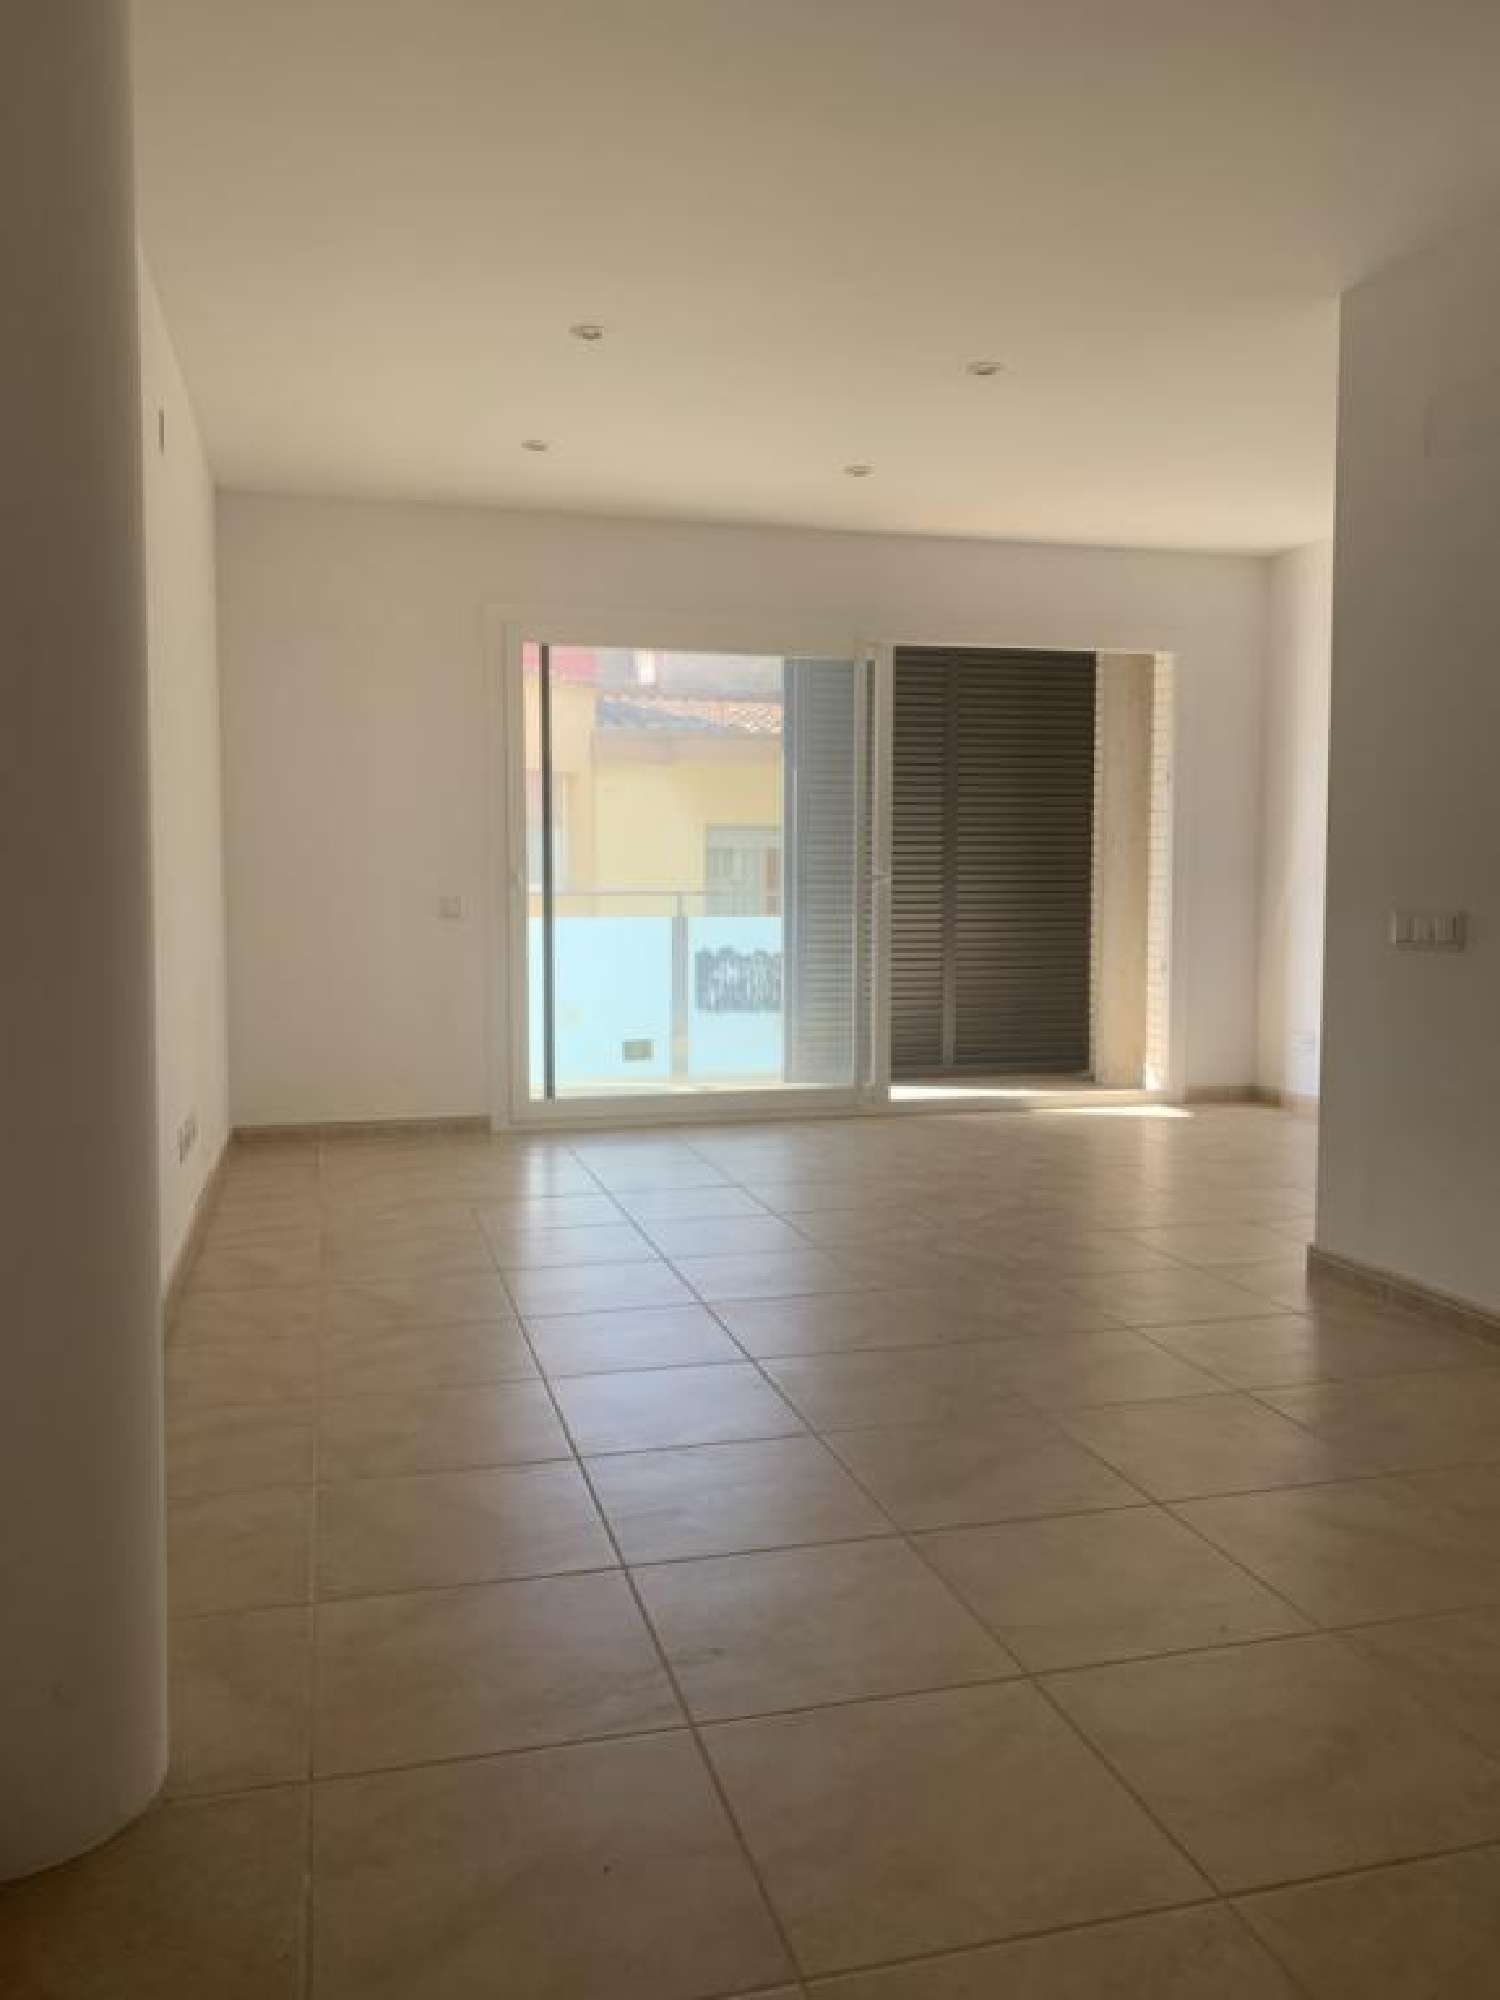 roses girona appartement foto 4606330